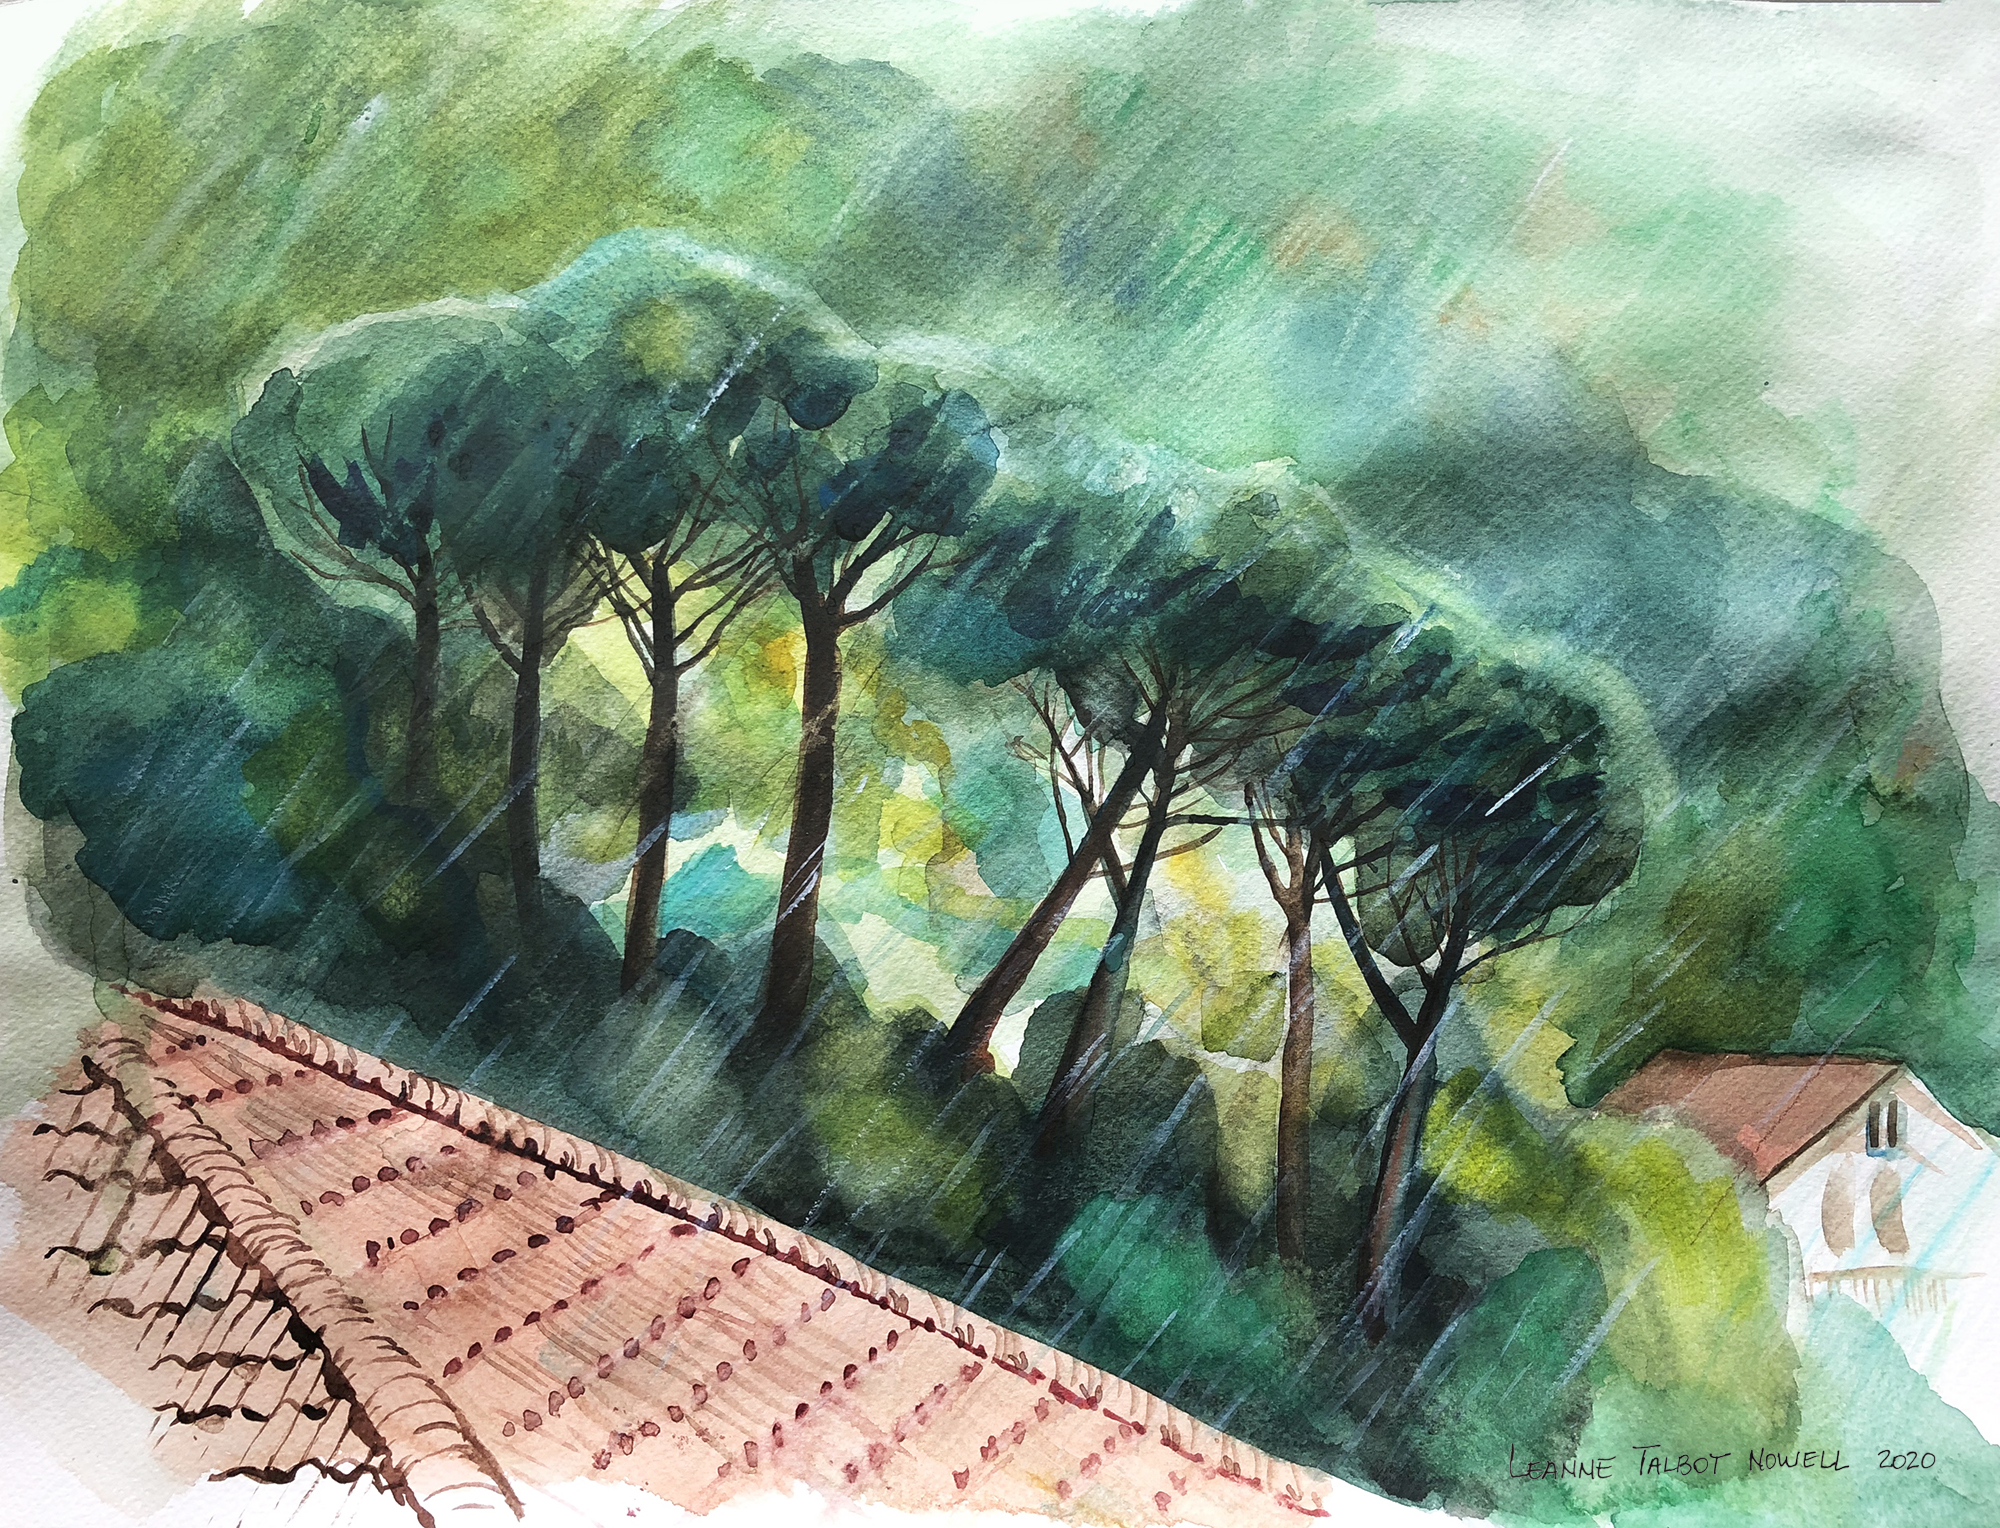 A rainy day - watercolour painting by Leanne Talbot Nowell